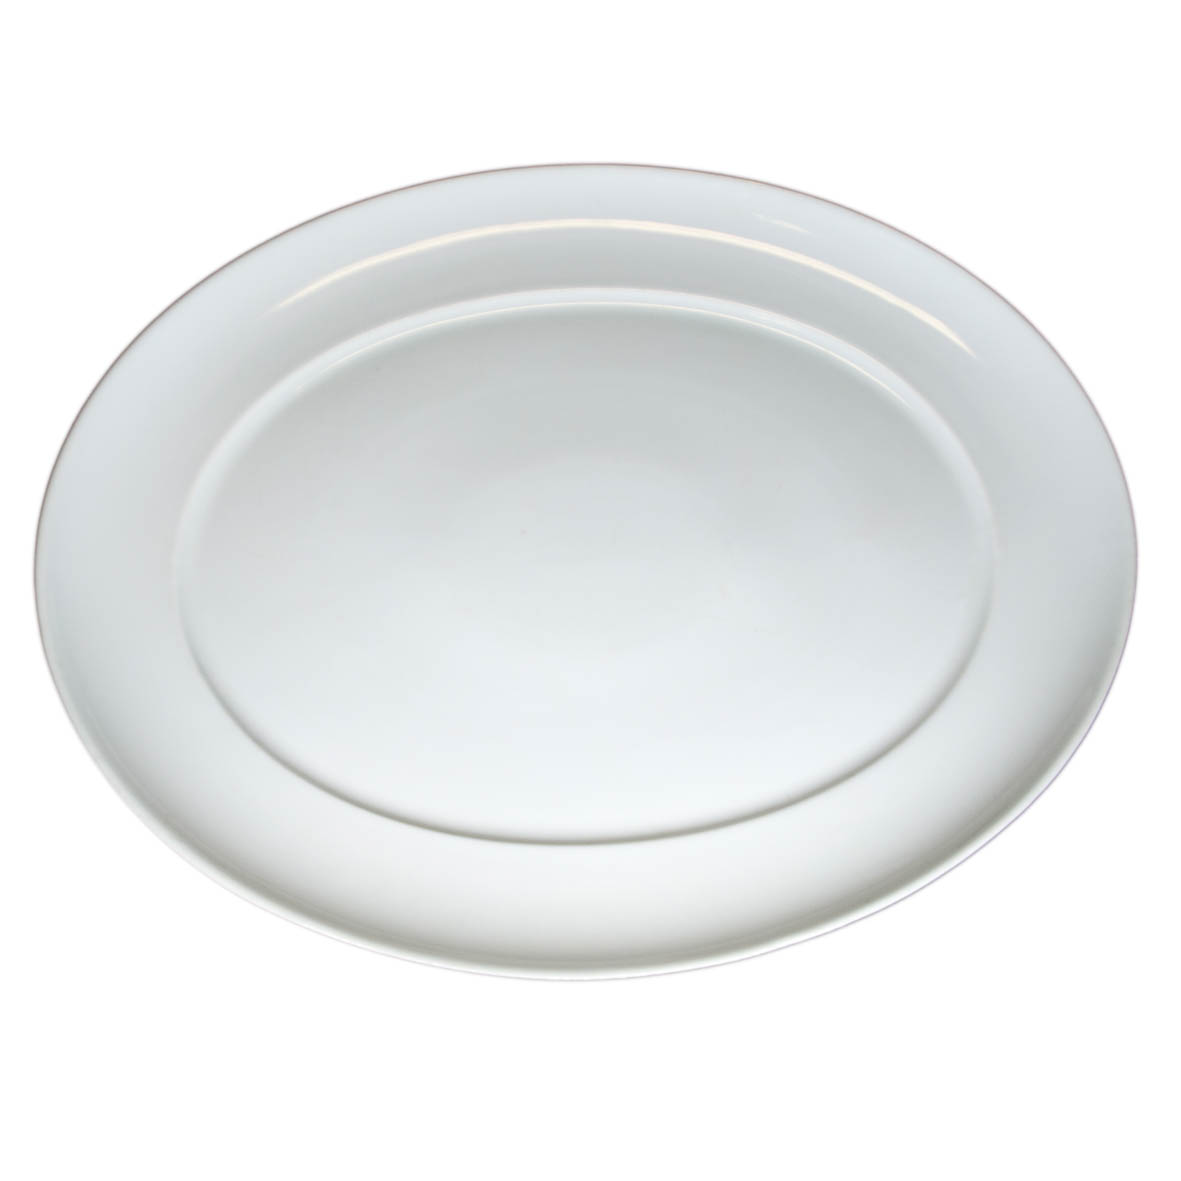 Travessa de porcelana Oval lisa